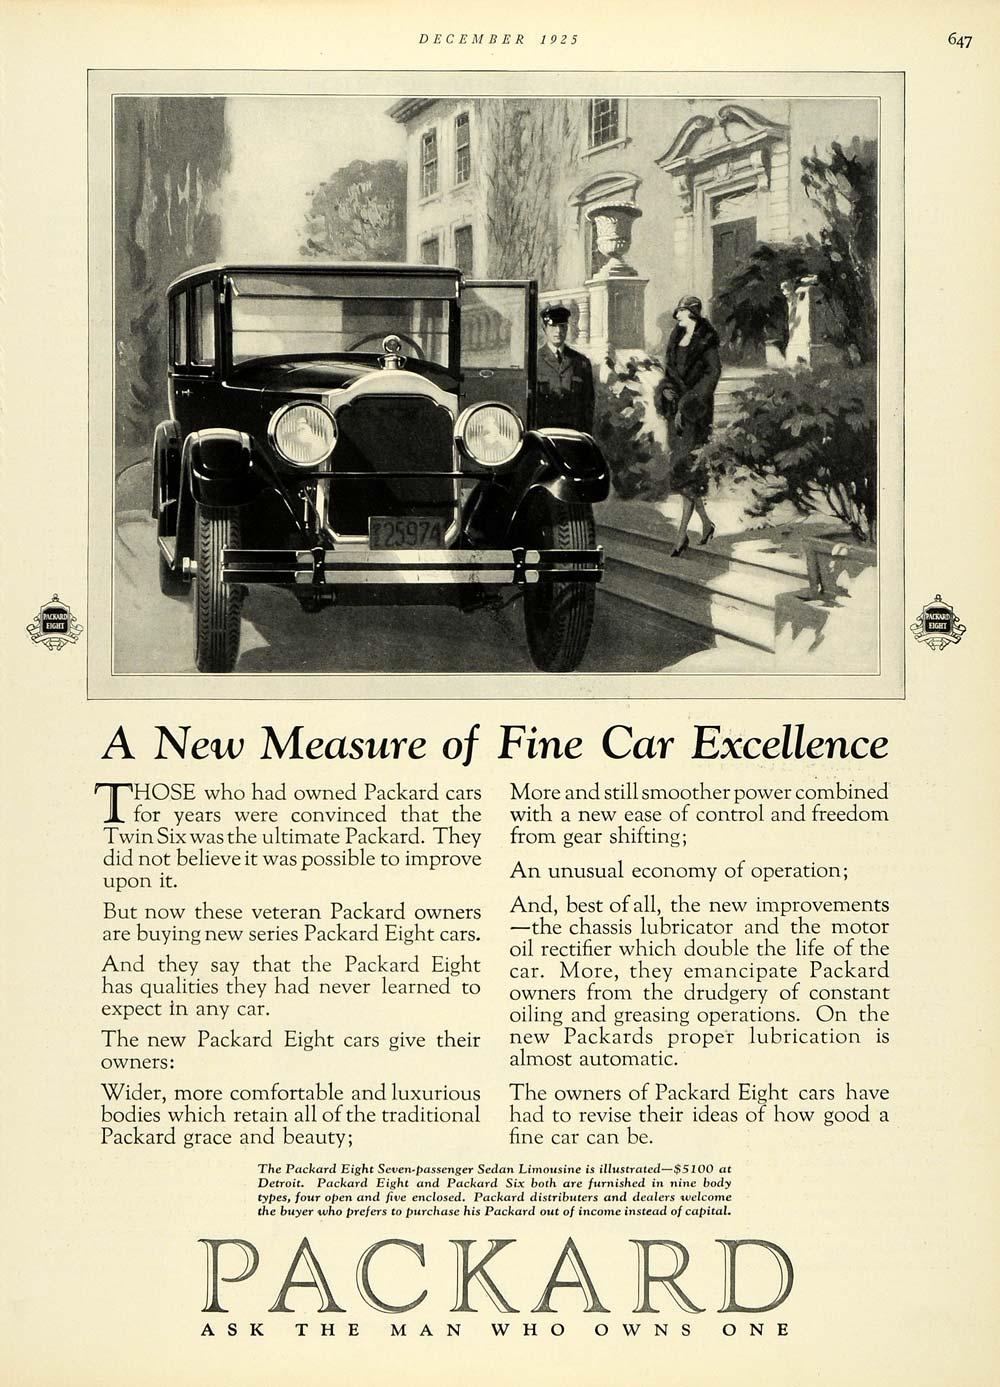 1925 Ad Residence Lady Art Deco Luxury Packard Eight Sedan Limousine HB3